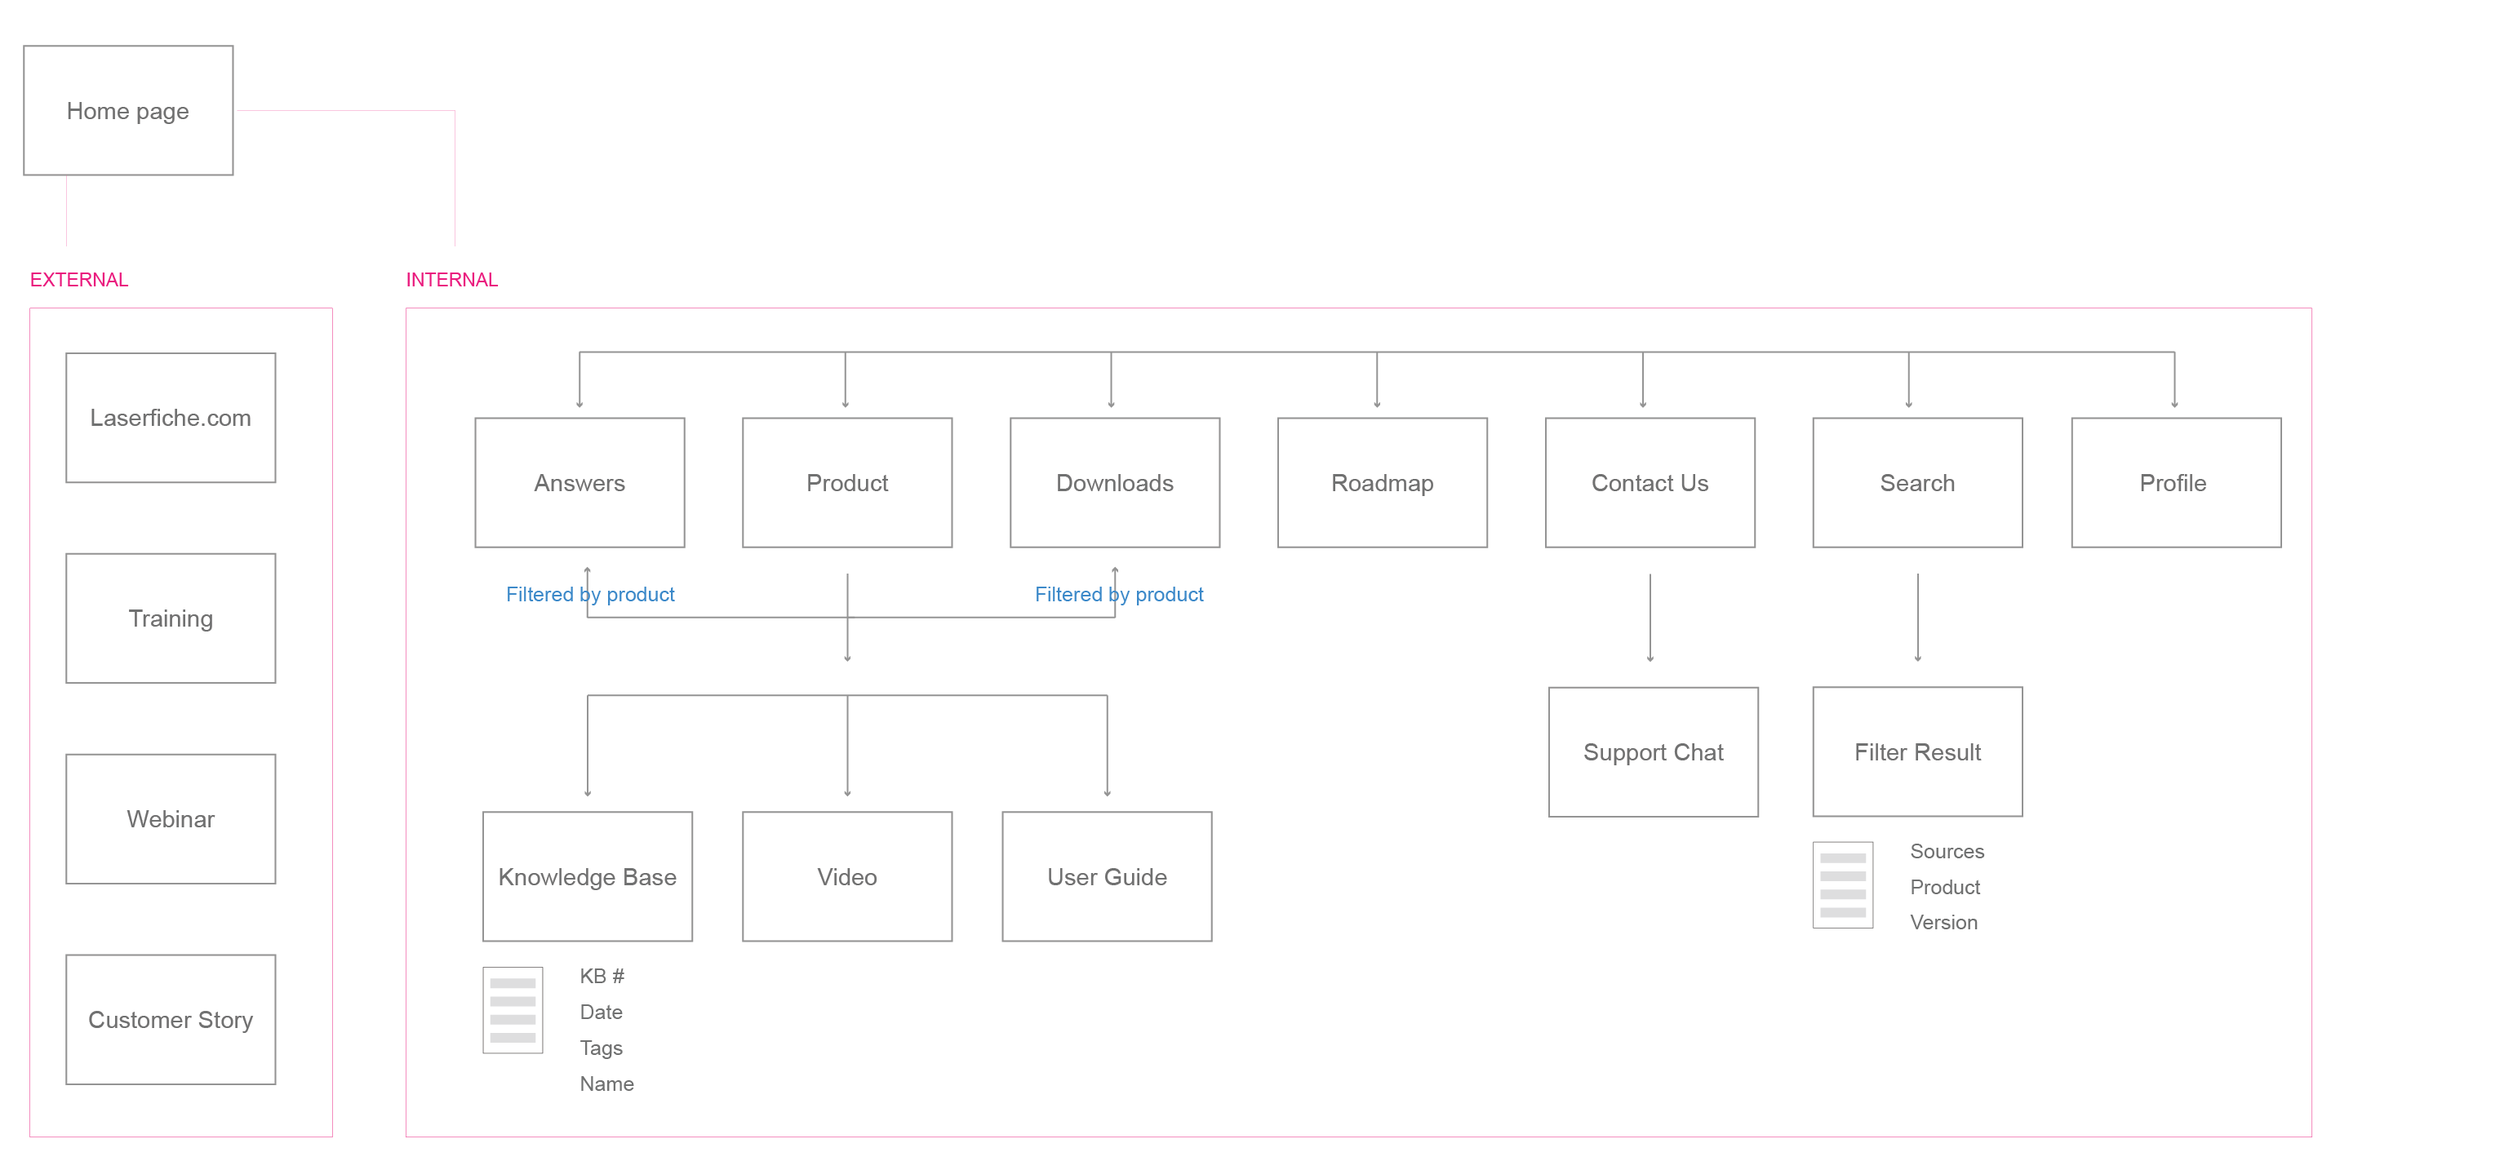 Interaction flow map after re-structure